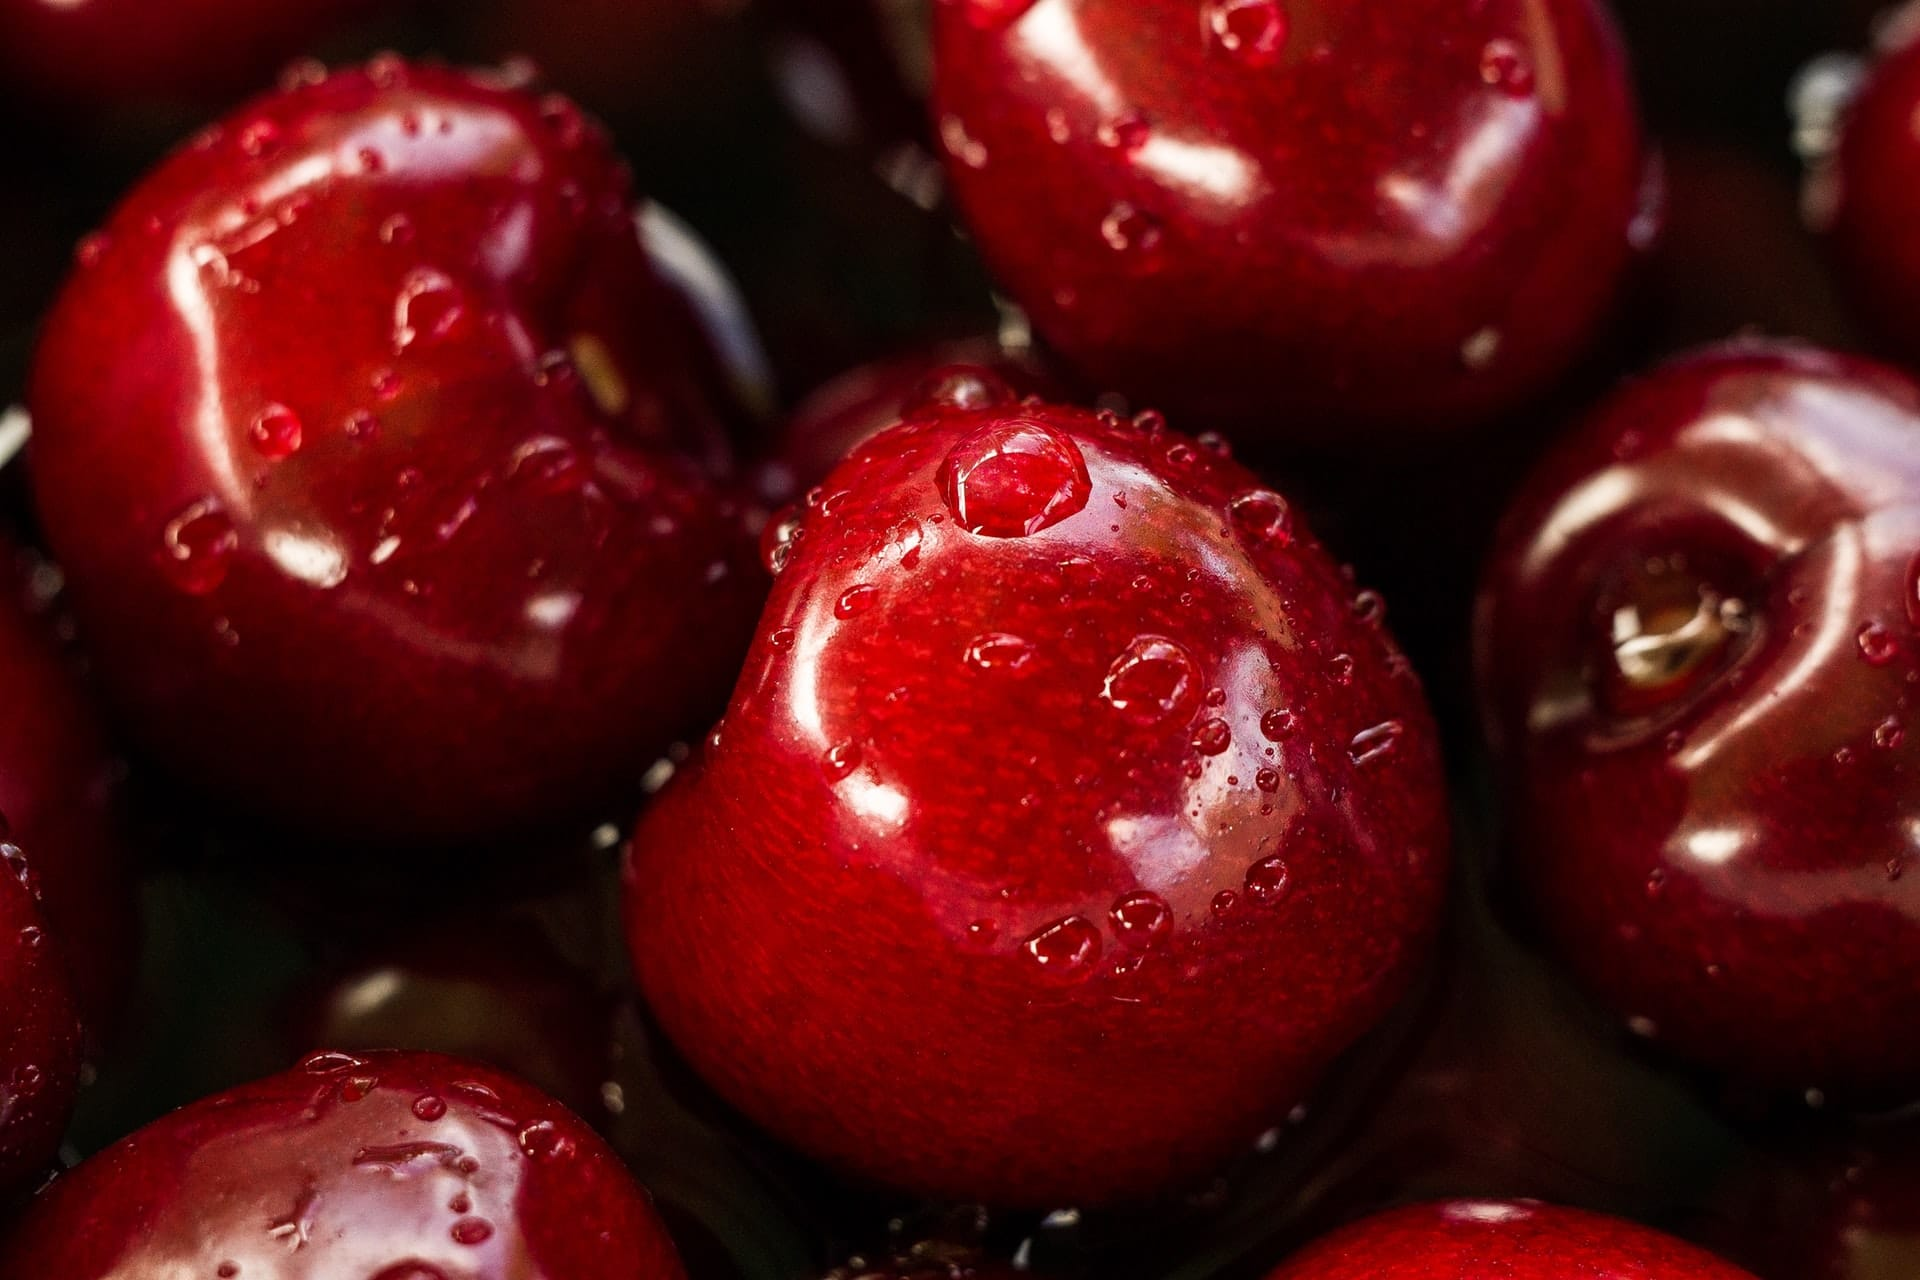 When are cherries in season